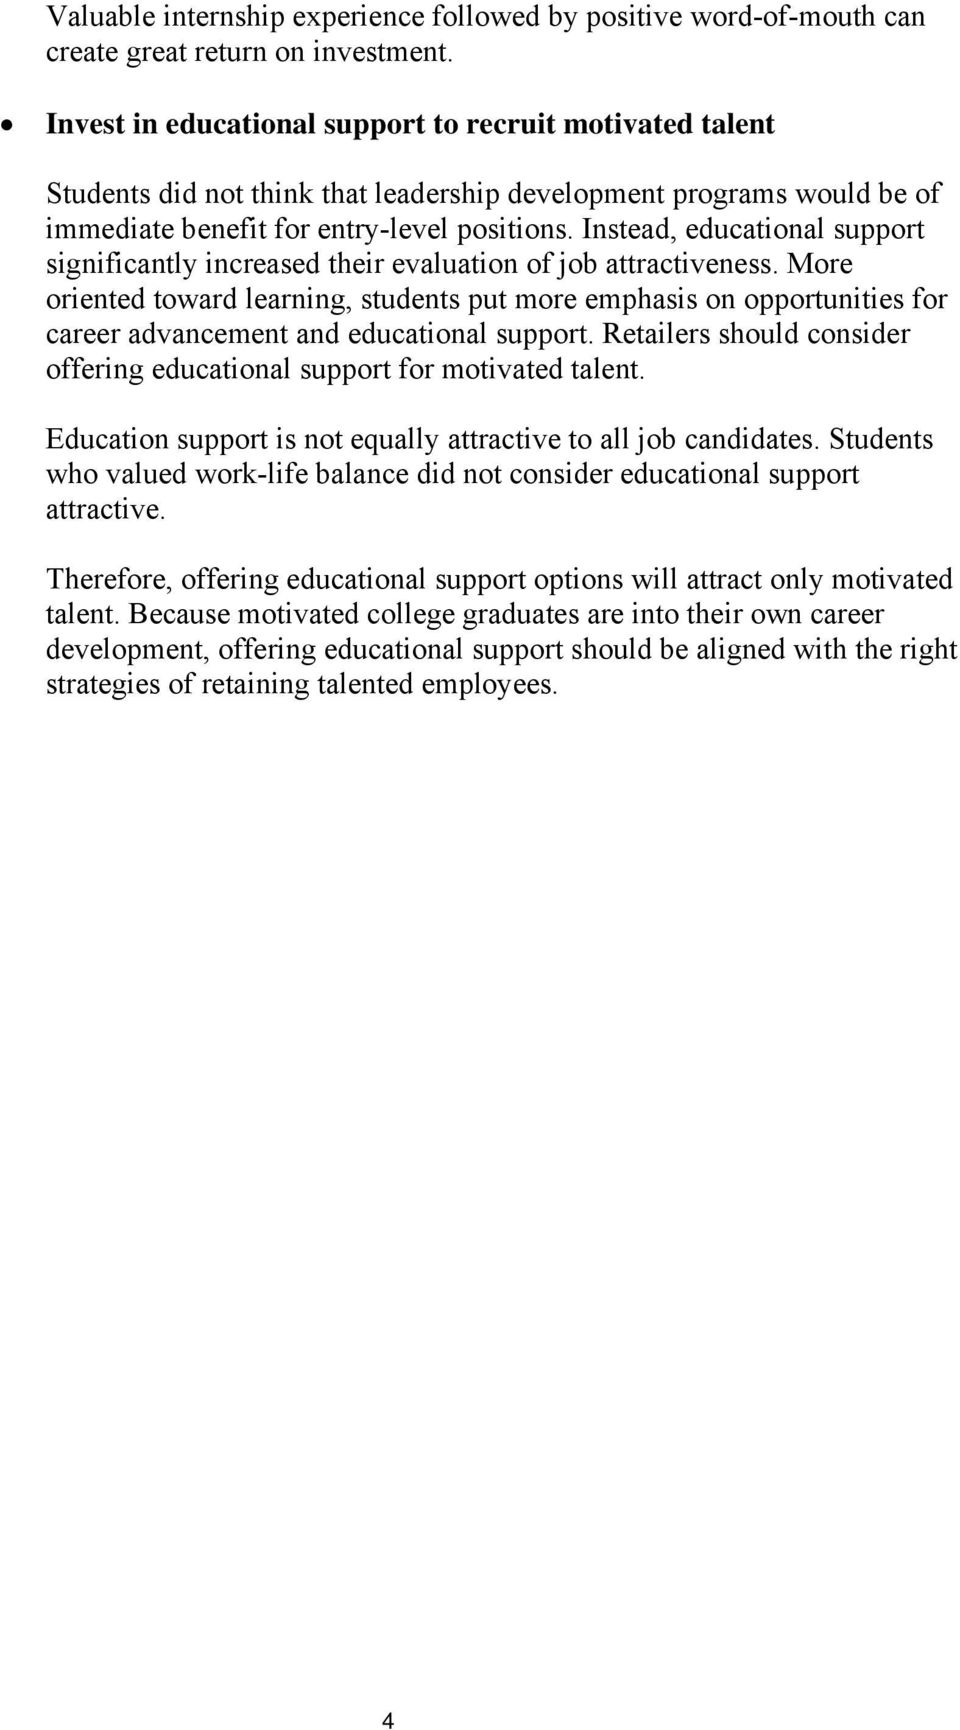 Instead, educational support significantly increased their evaluation of job attractiveness.